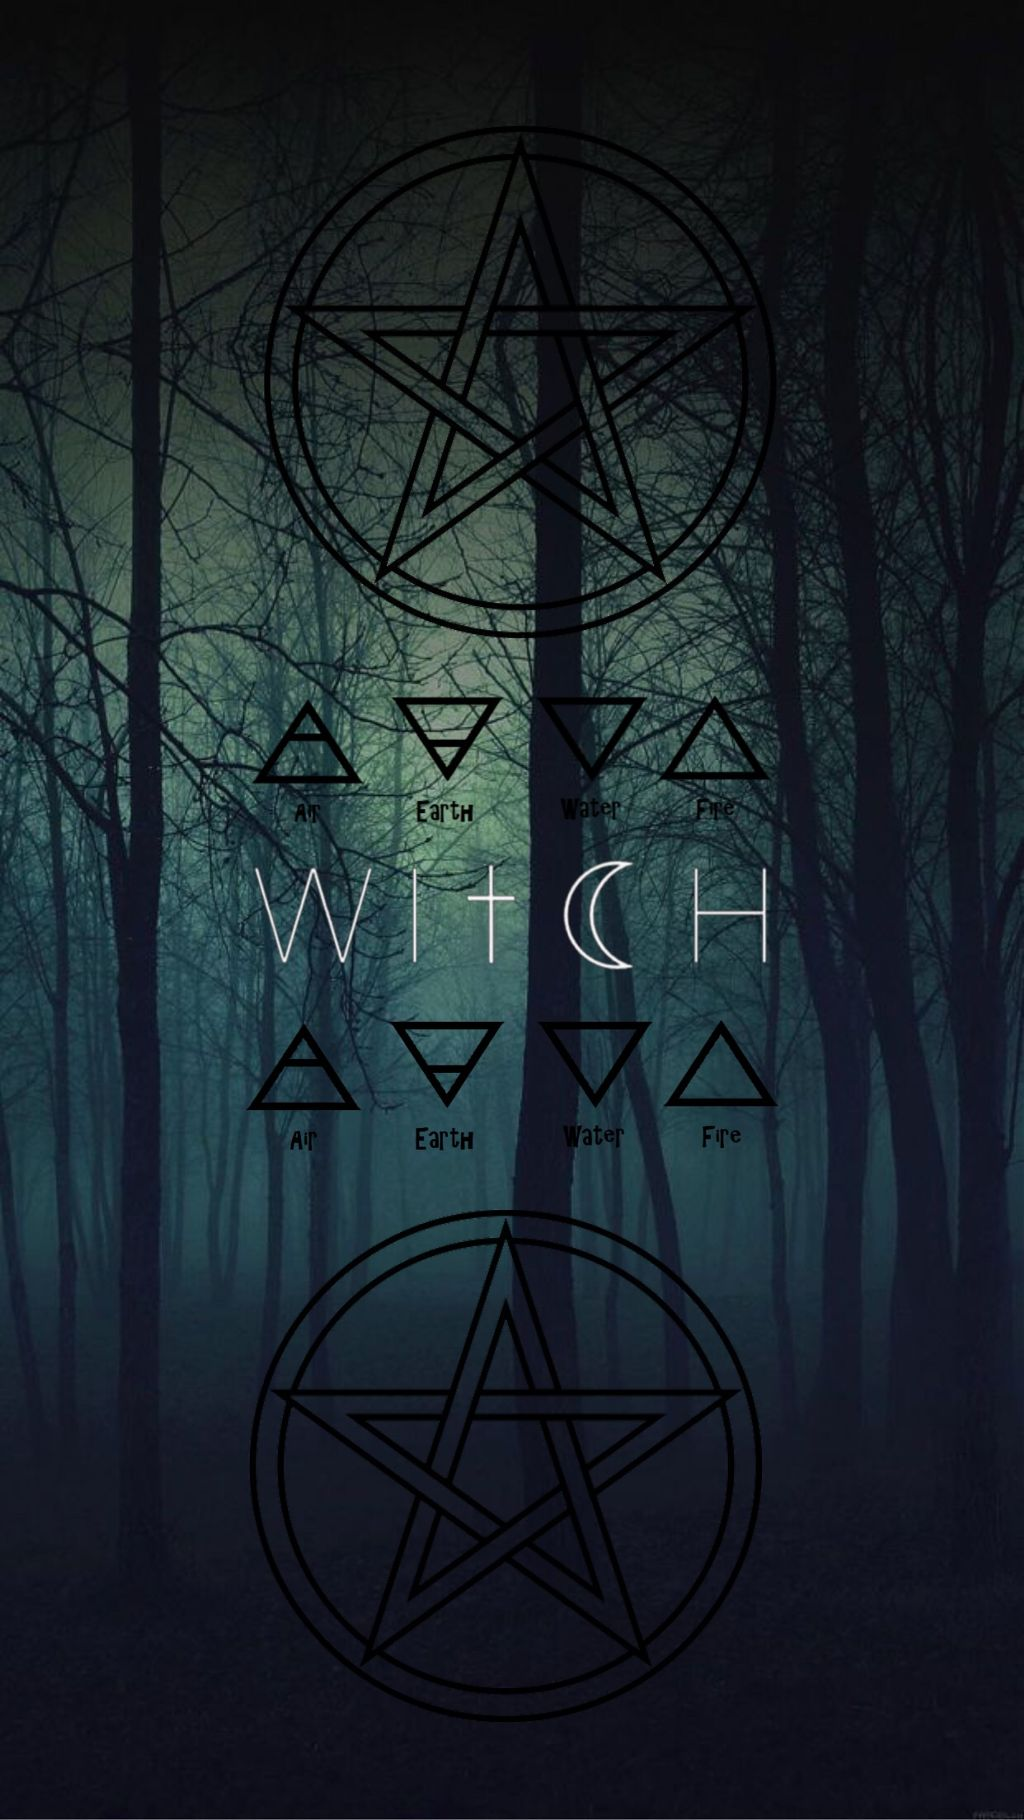 witch wicca wallpaper aesthetic - Image